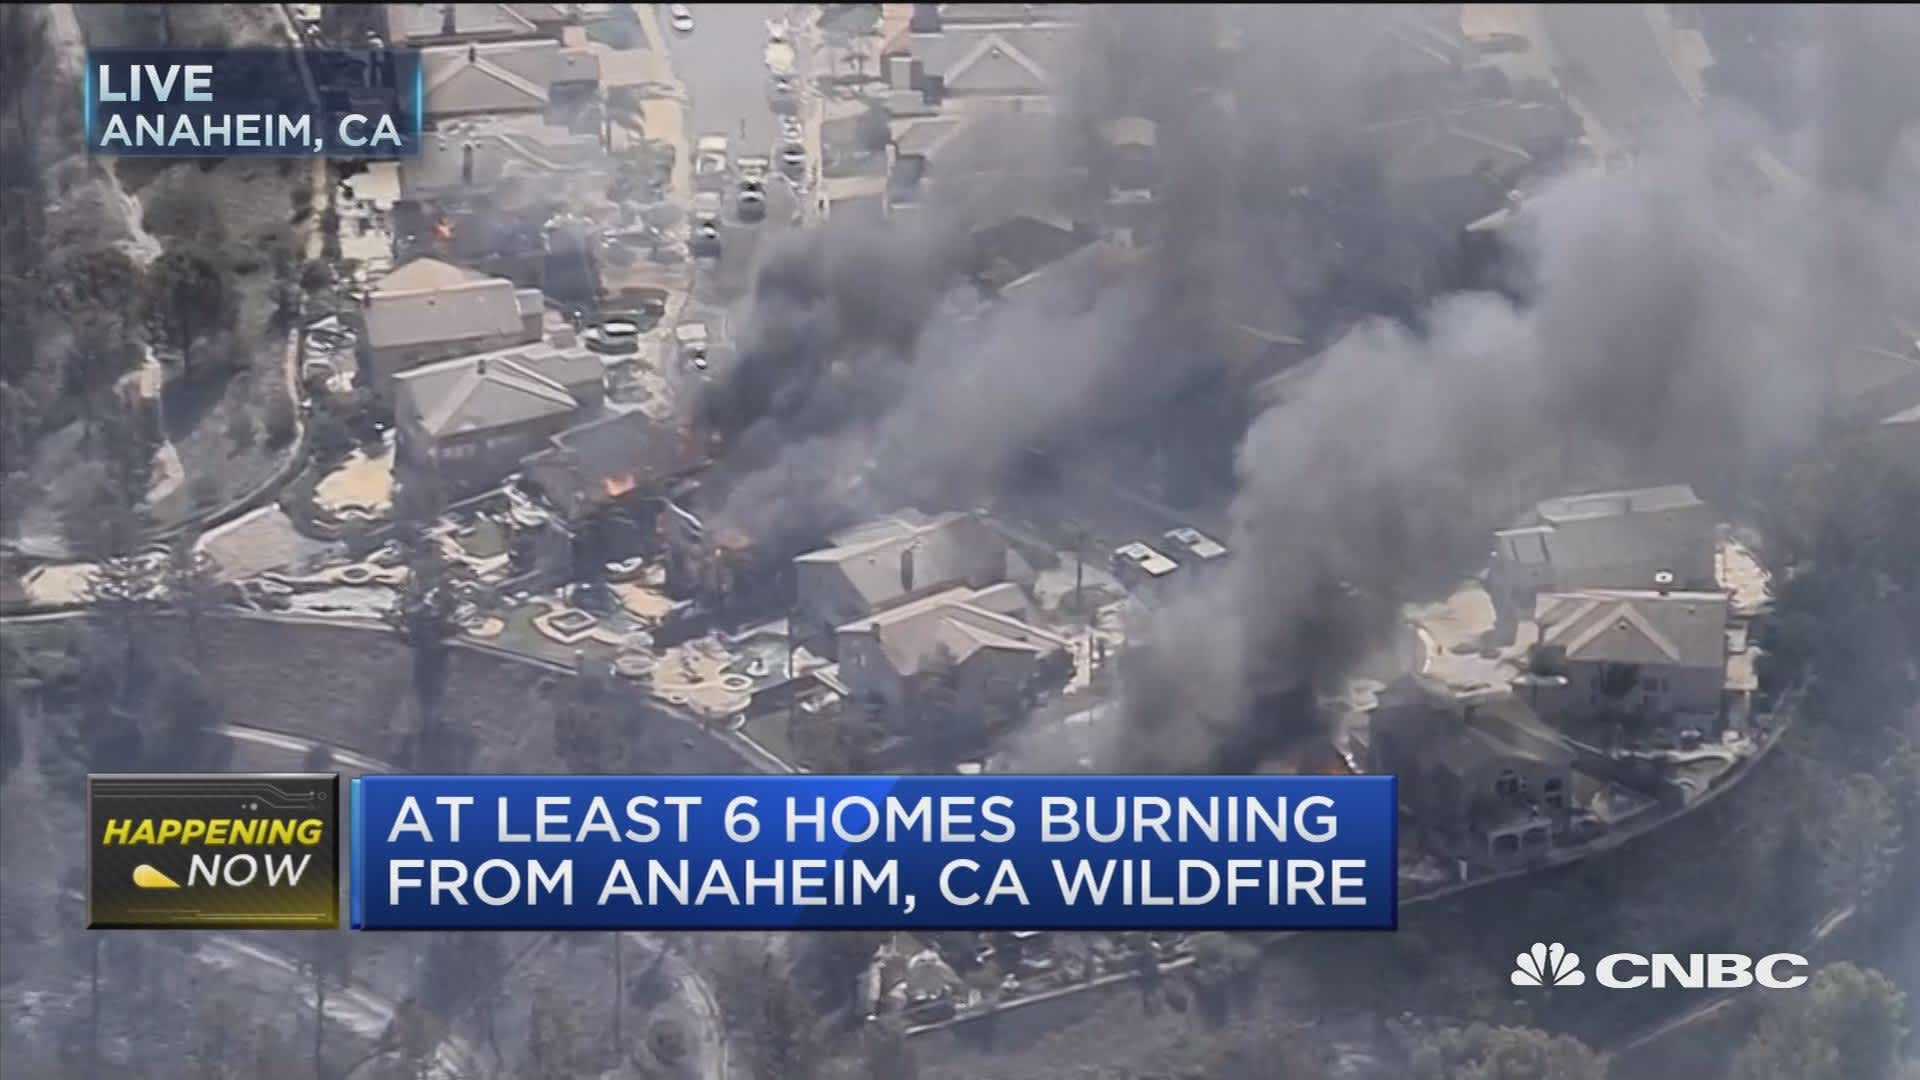 At least six homes burning as wildfires break out in Anaheim, California